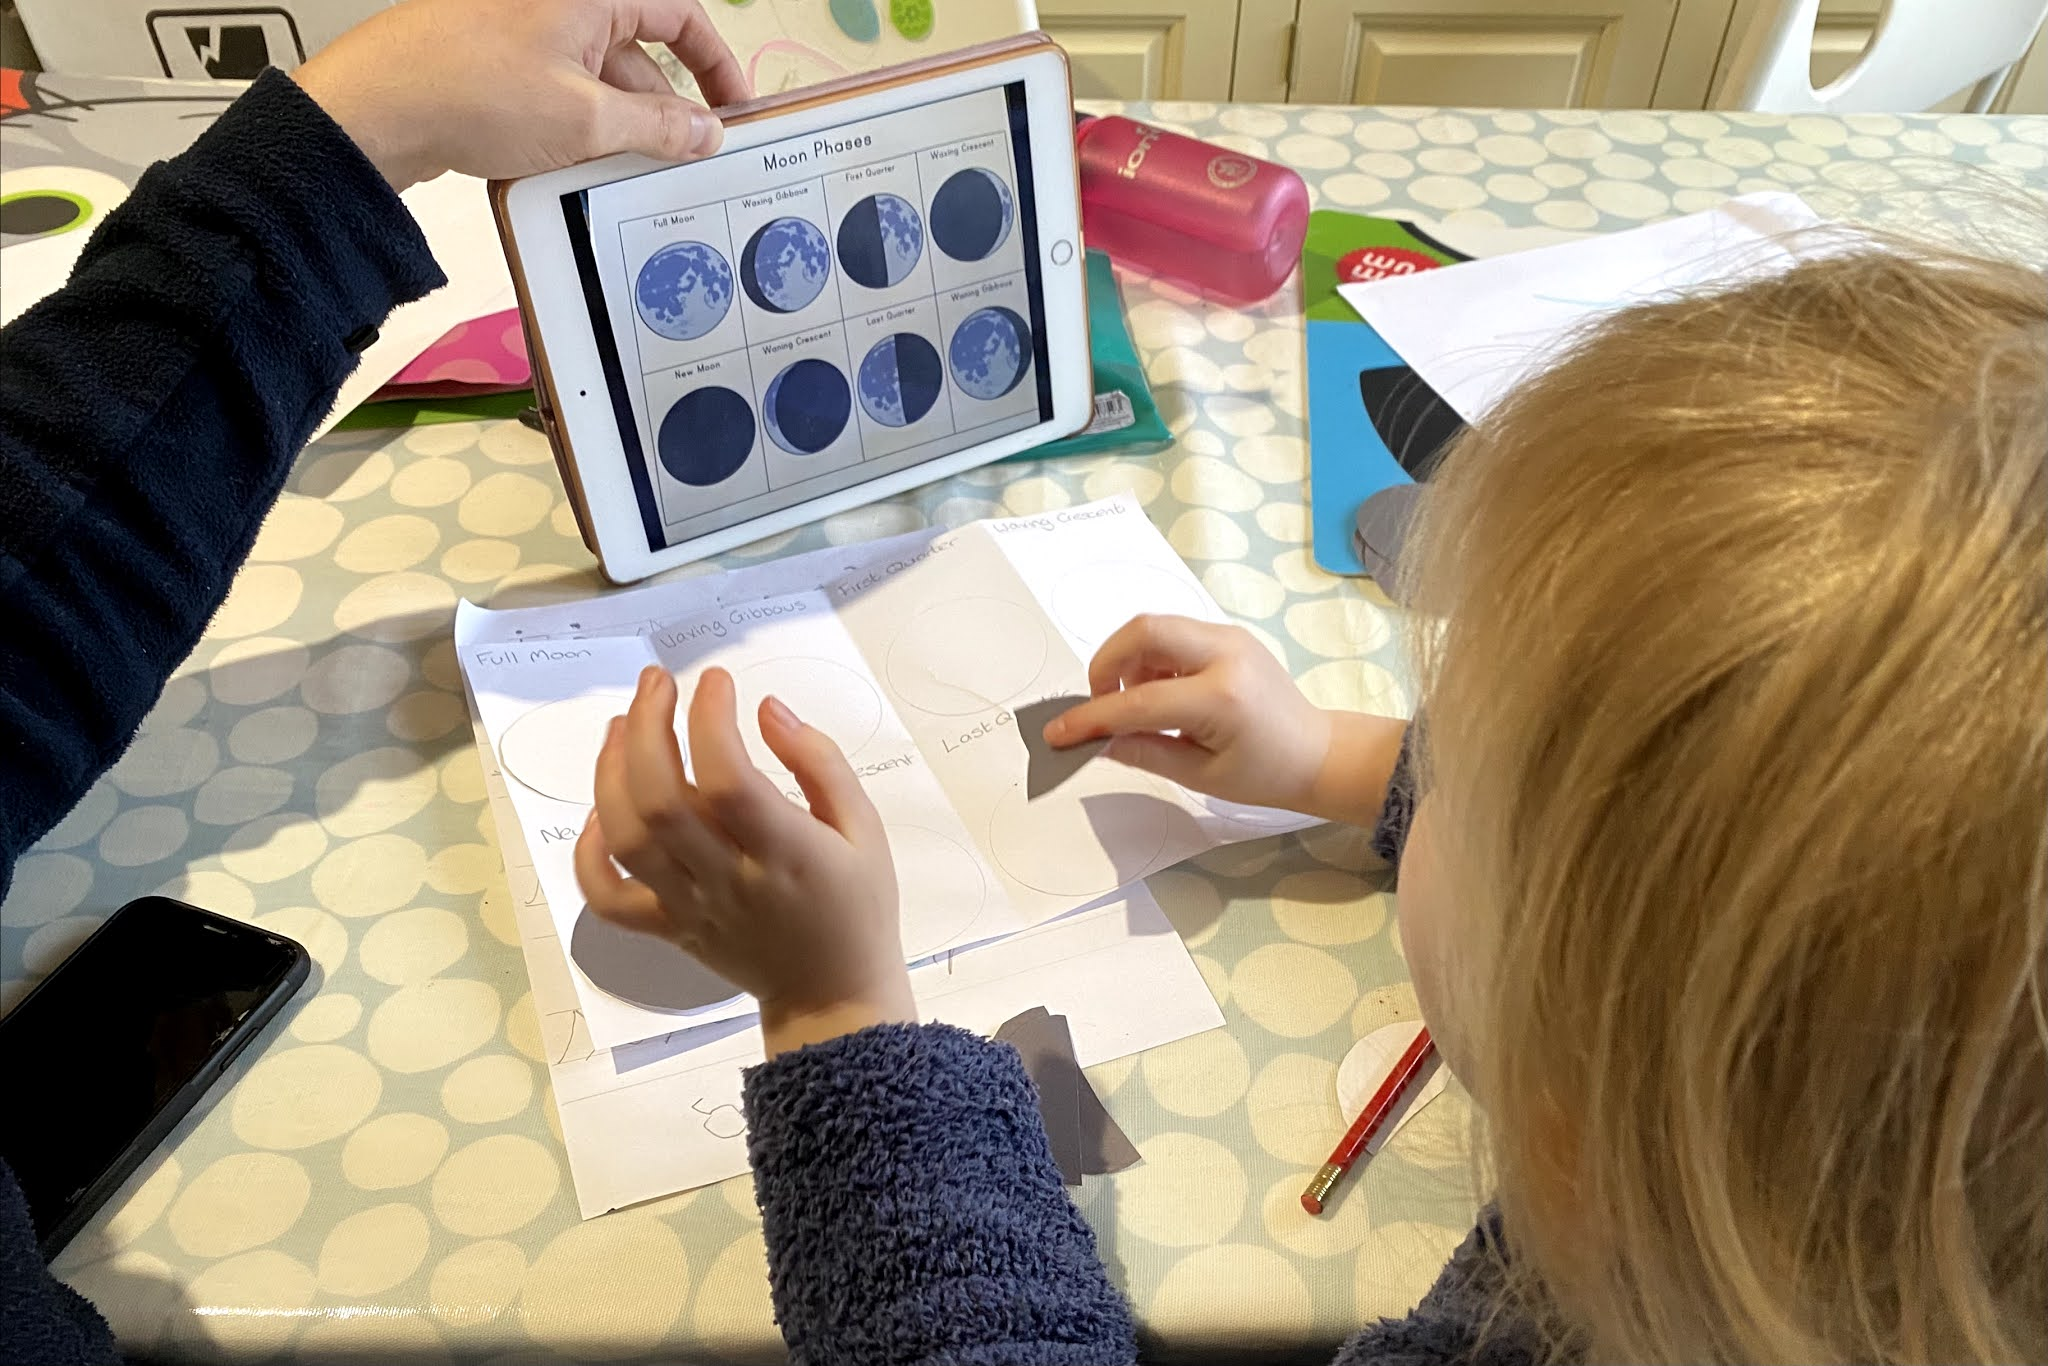 A parent holding an iPad and sitting with a child talking through stages of the moon